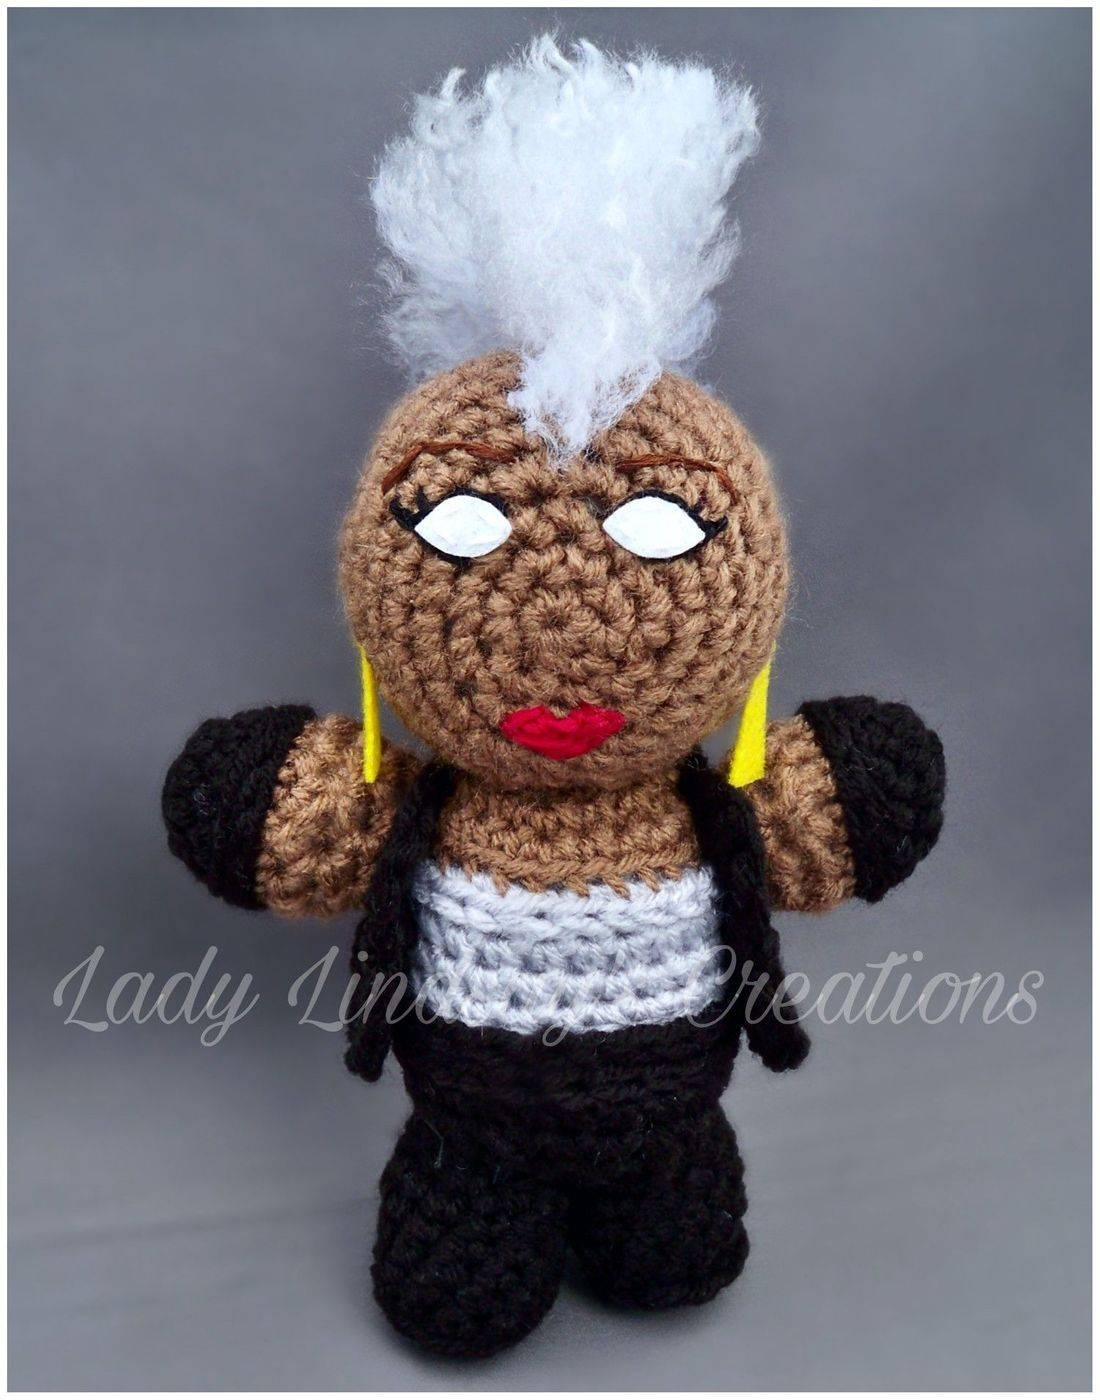 Ororo Munroe, Ororo, Storm, X-Men, Black Panther, T'Challa, Marvel, Comicbook, Amigurumi, Crochet, Plush, Shop Small, Handmade